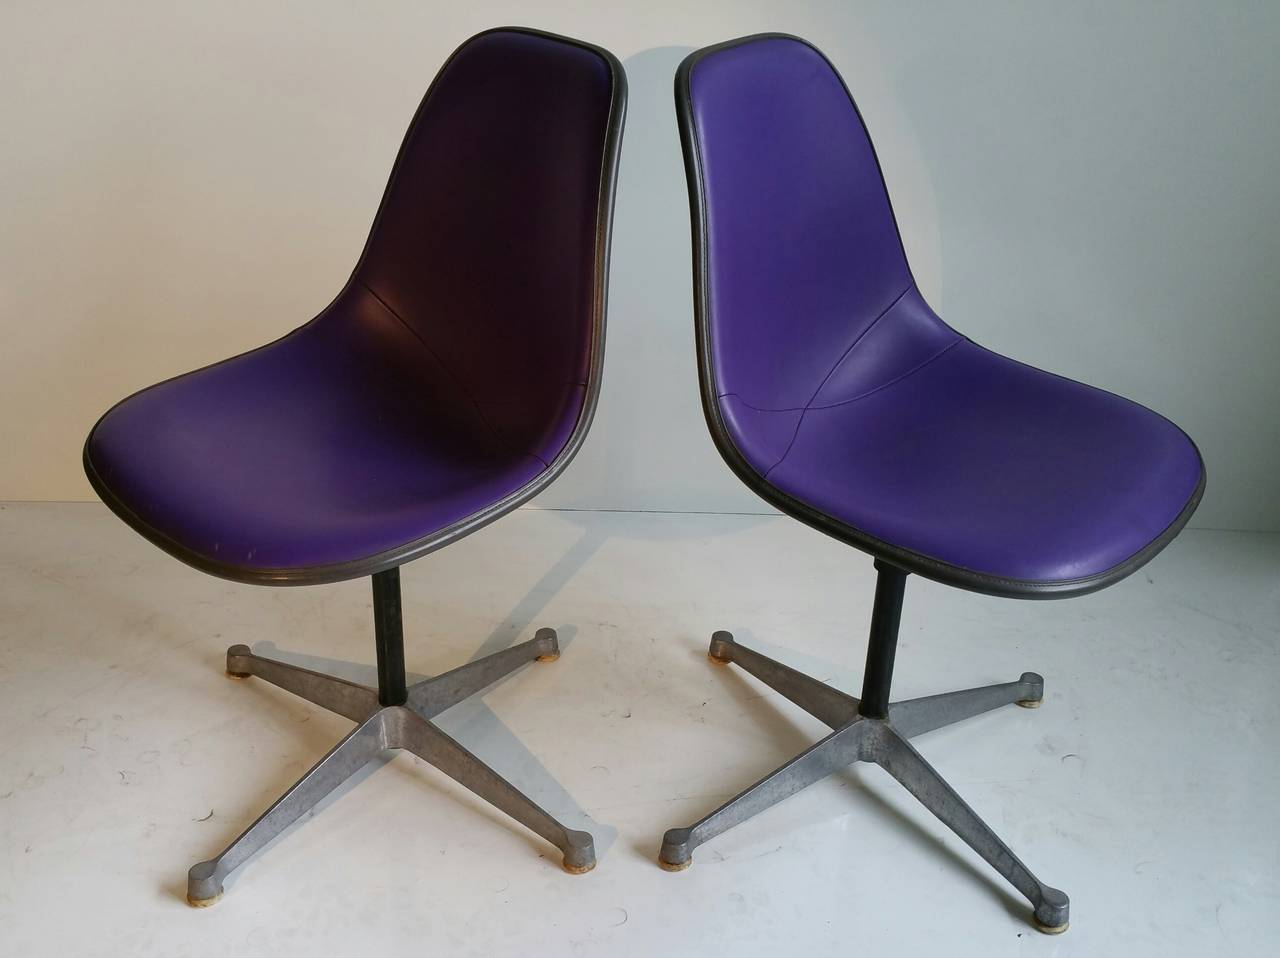 Pair of Charles and Ray Eames Adjustable Swivel Chairs 6